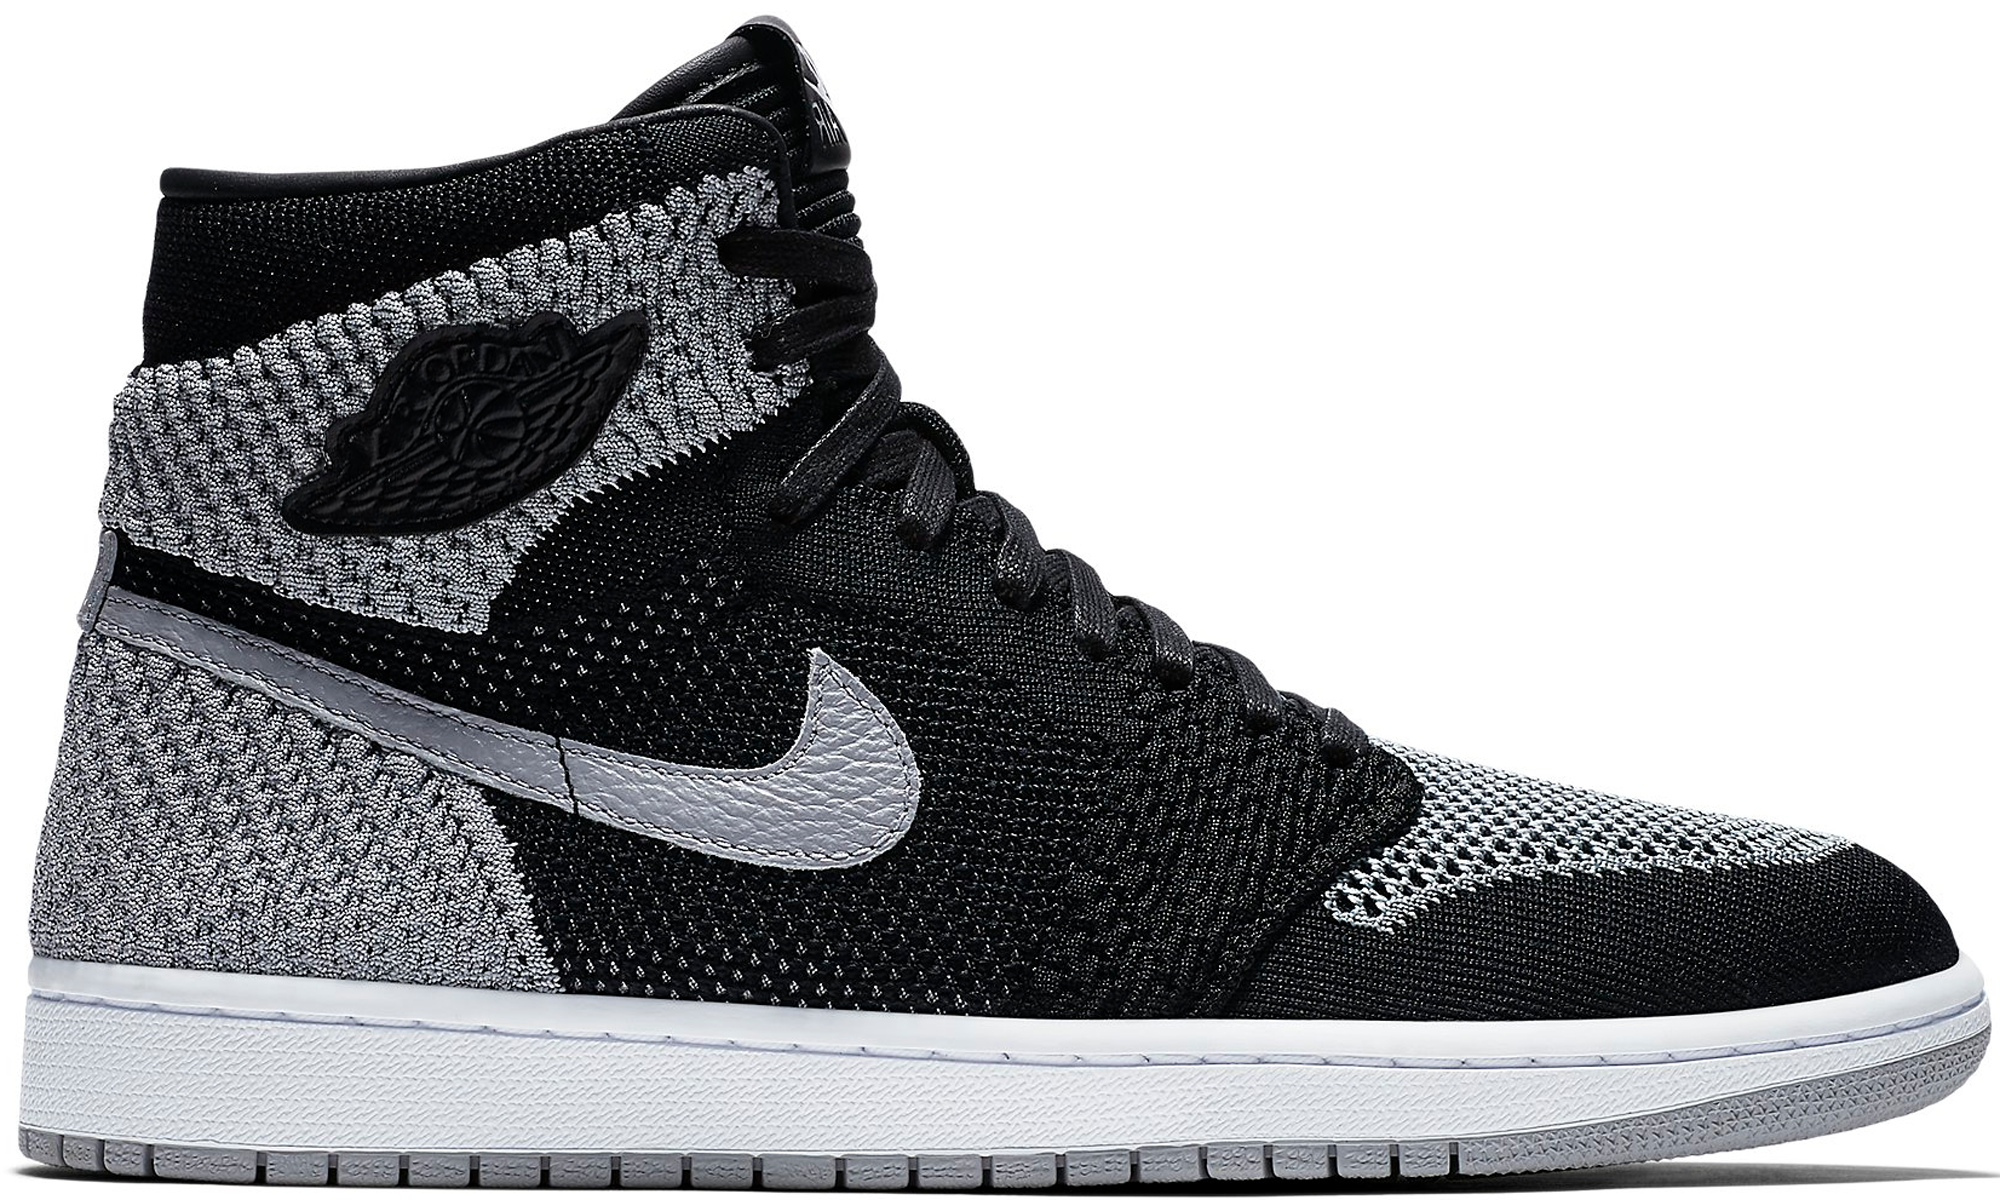 Jordan 1 Retro High Flyknit Shadow